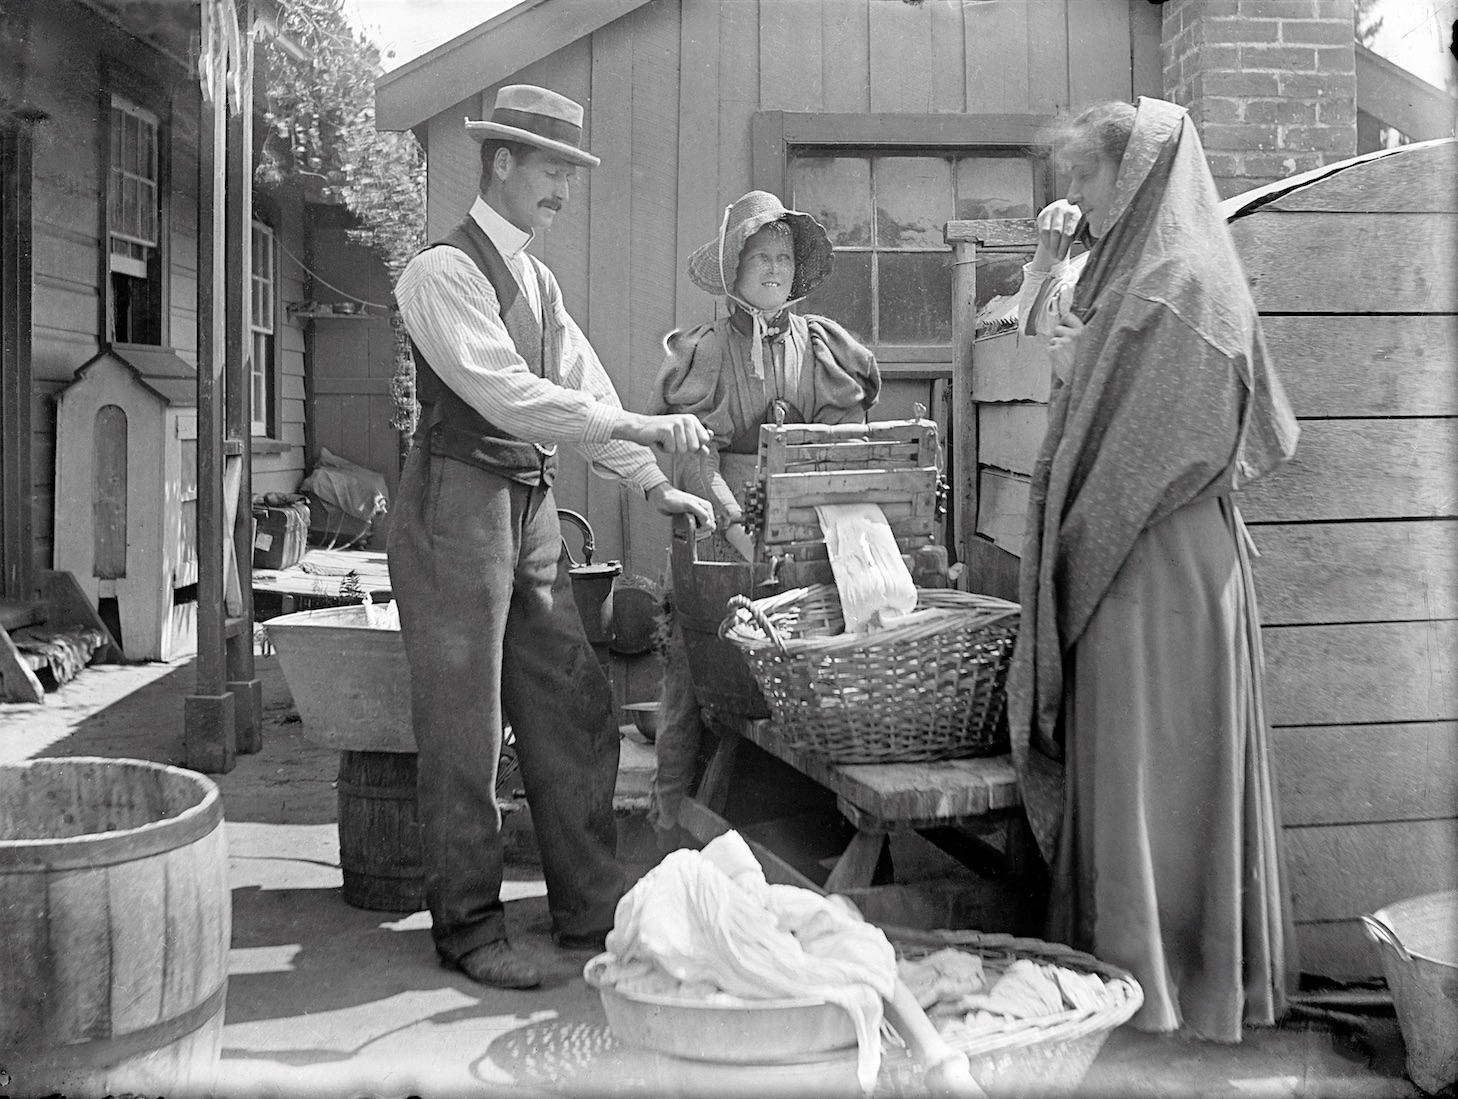 Man pretending to help with the laundry (look at his hands), New Zealand circa 1907-1916. Lemuel Lyes Collection